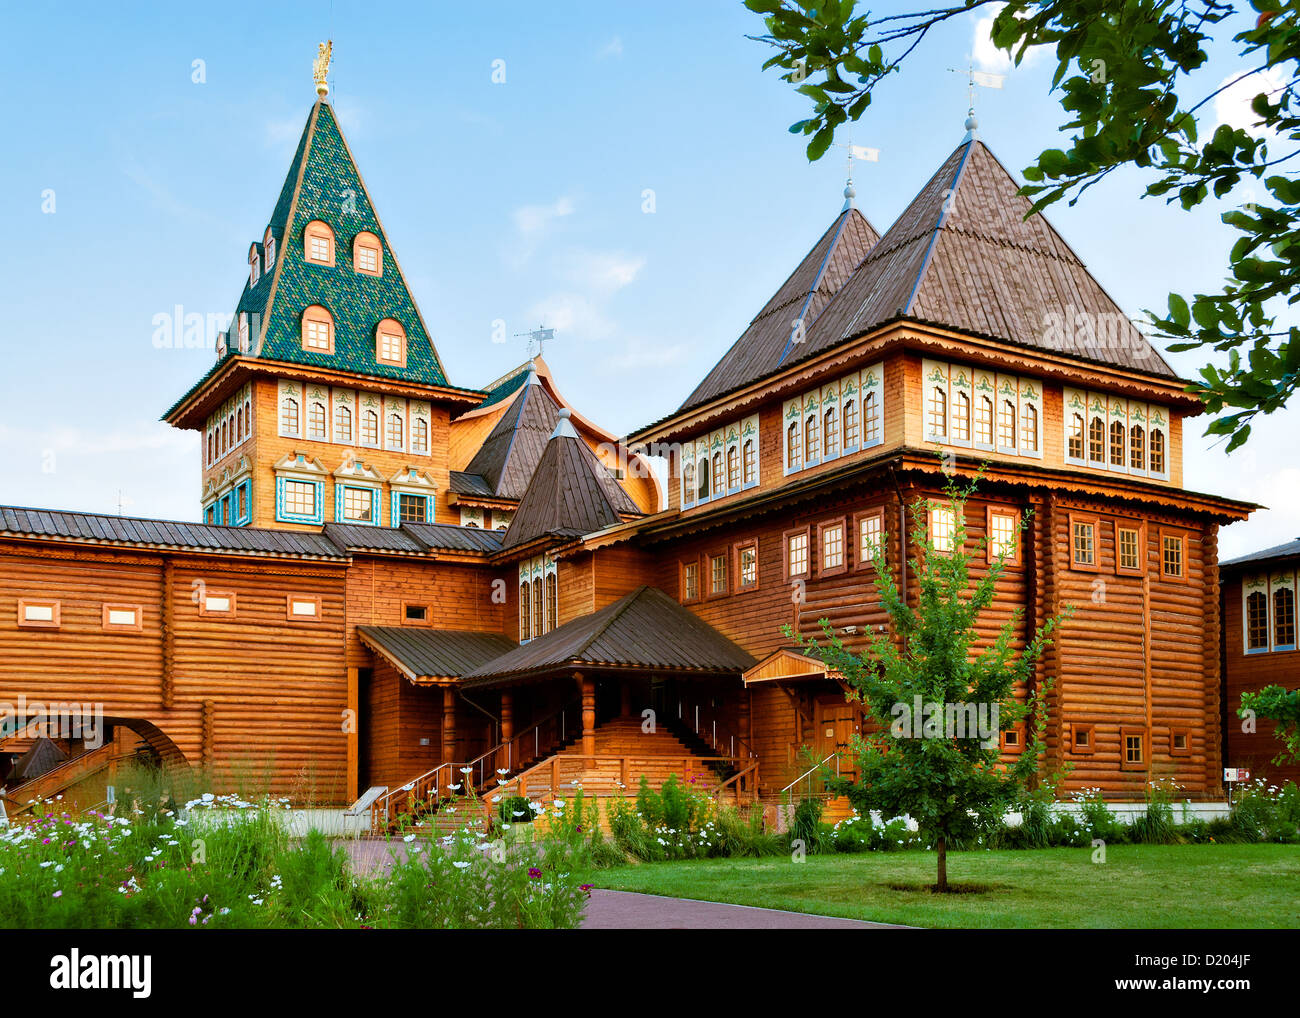 Wooden palace in Russia - Stock Image